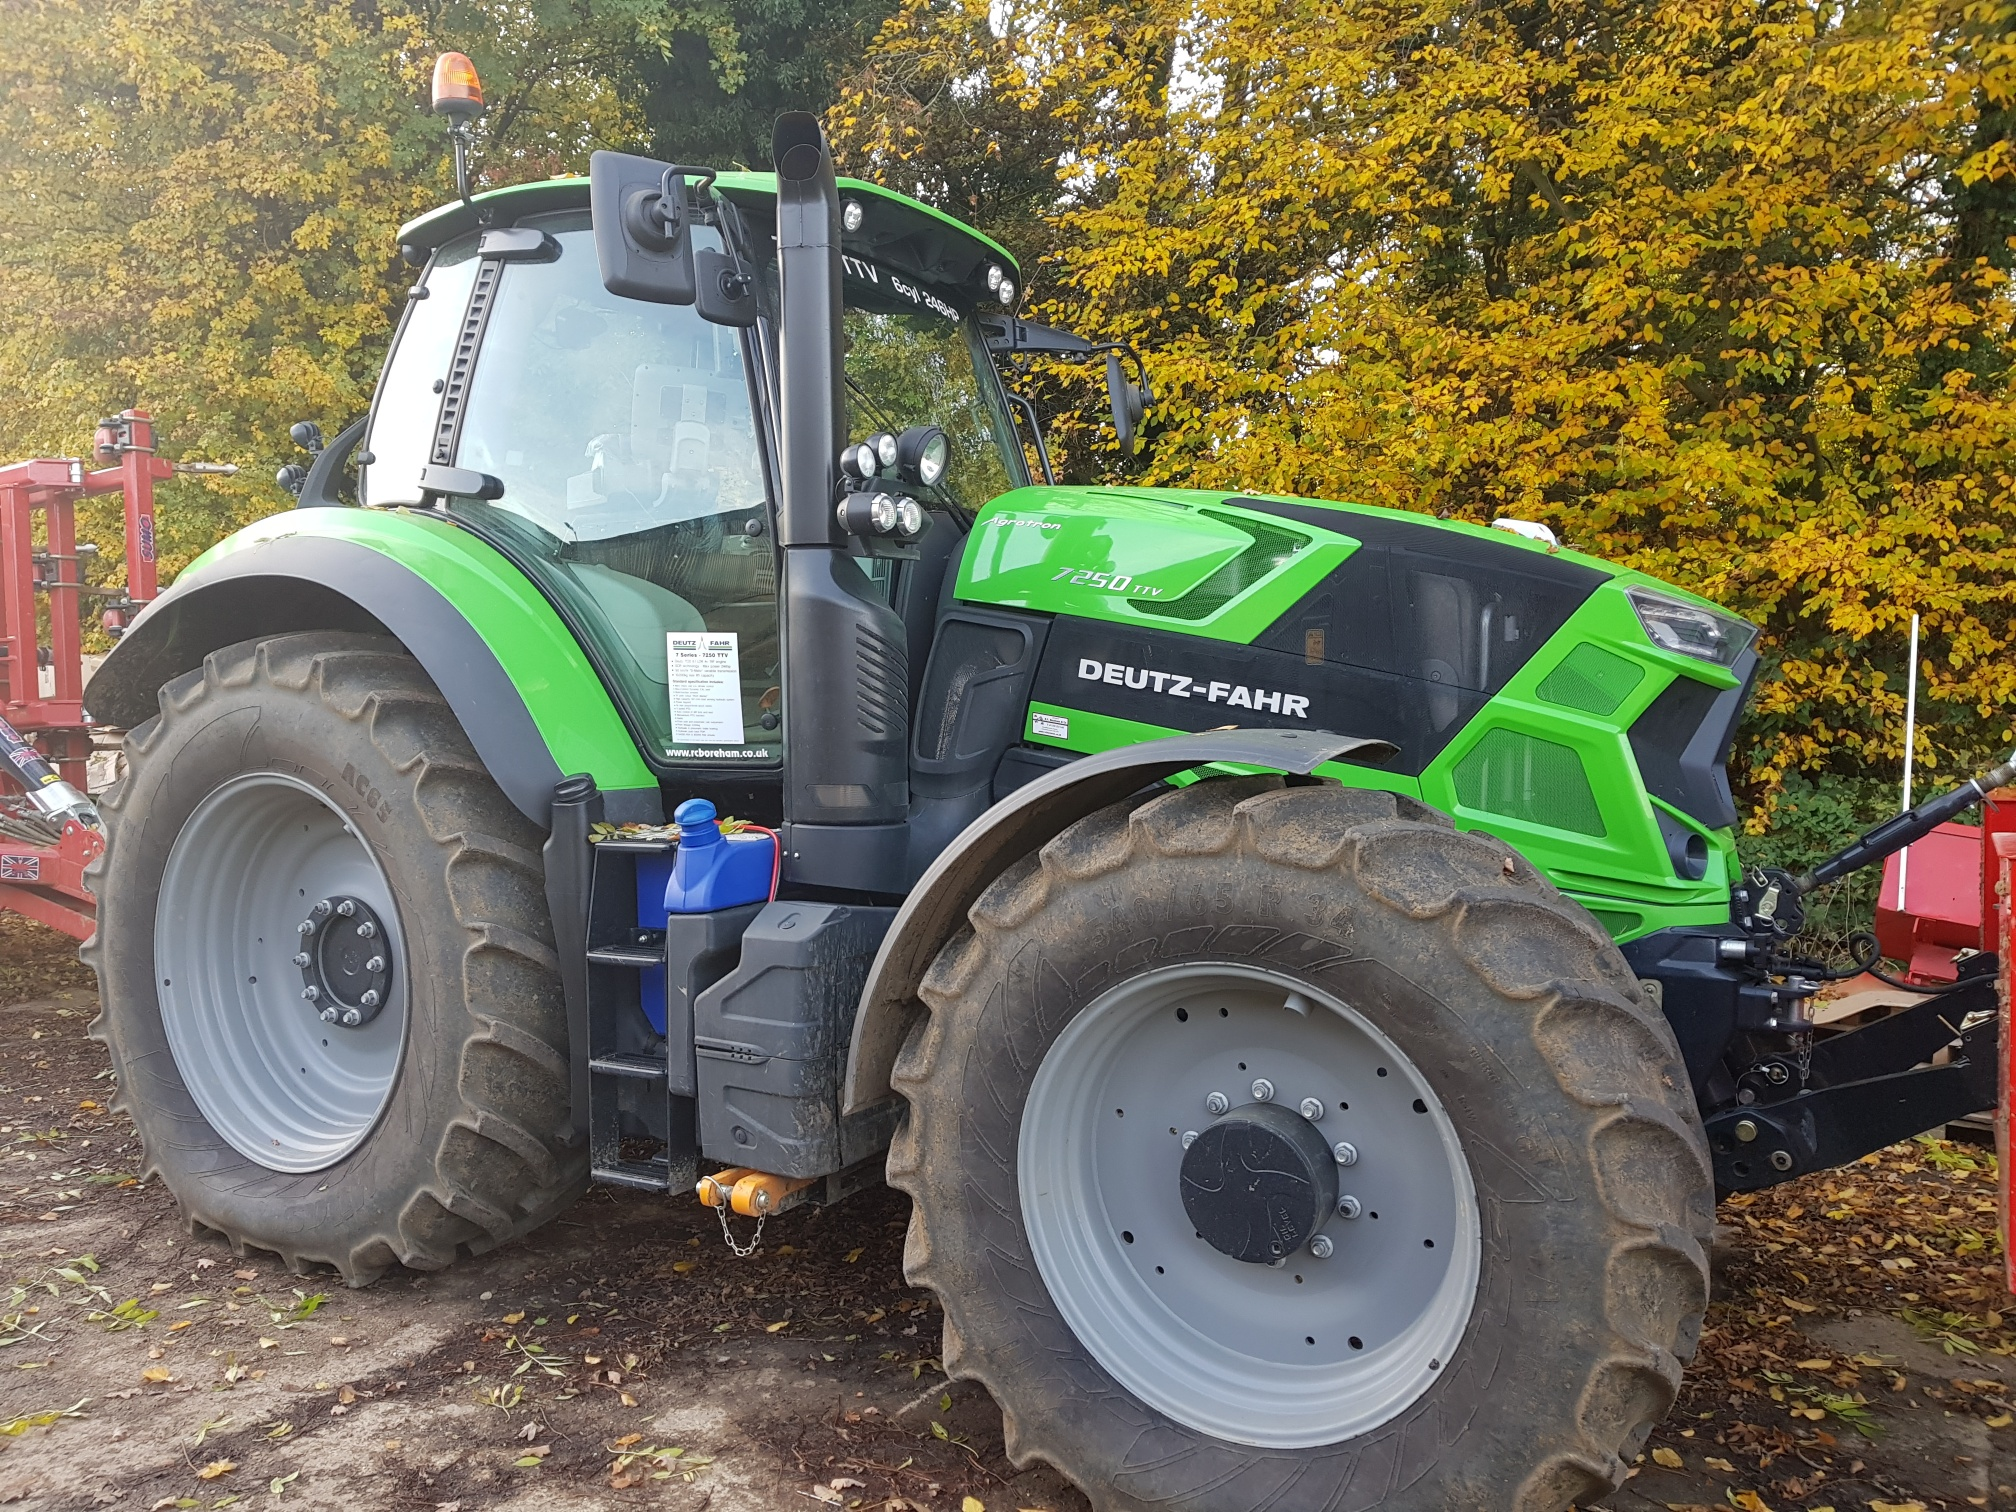 Deutz Fahr 7250 TTV Tractor for sale at R C Boreham & Co, Chelmsford, Essex.